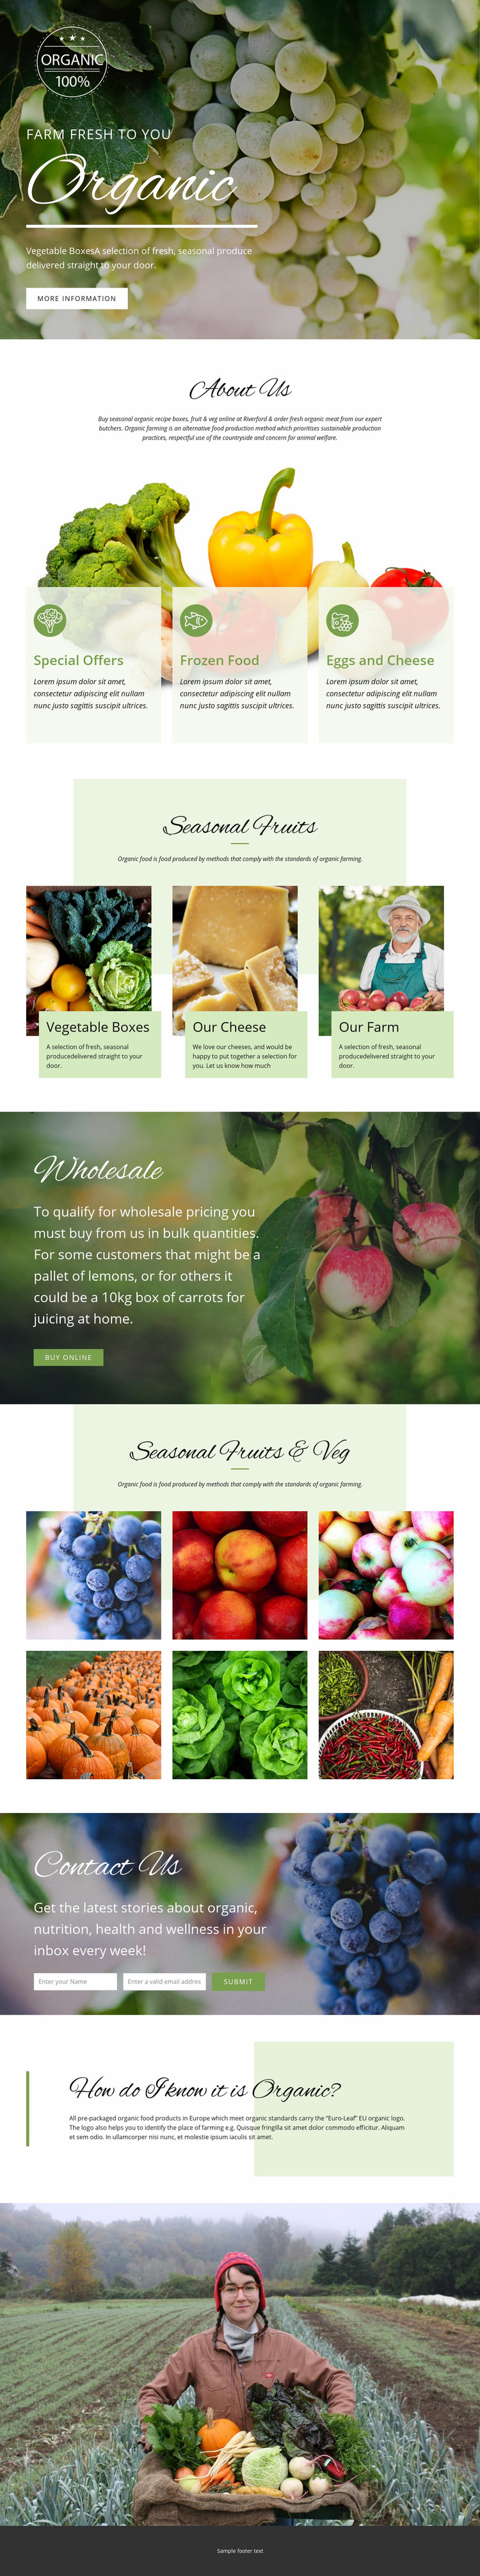 Healthier with organic food Web Page Design